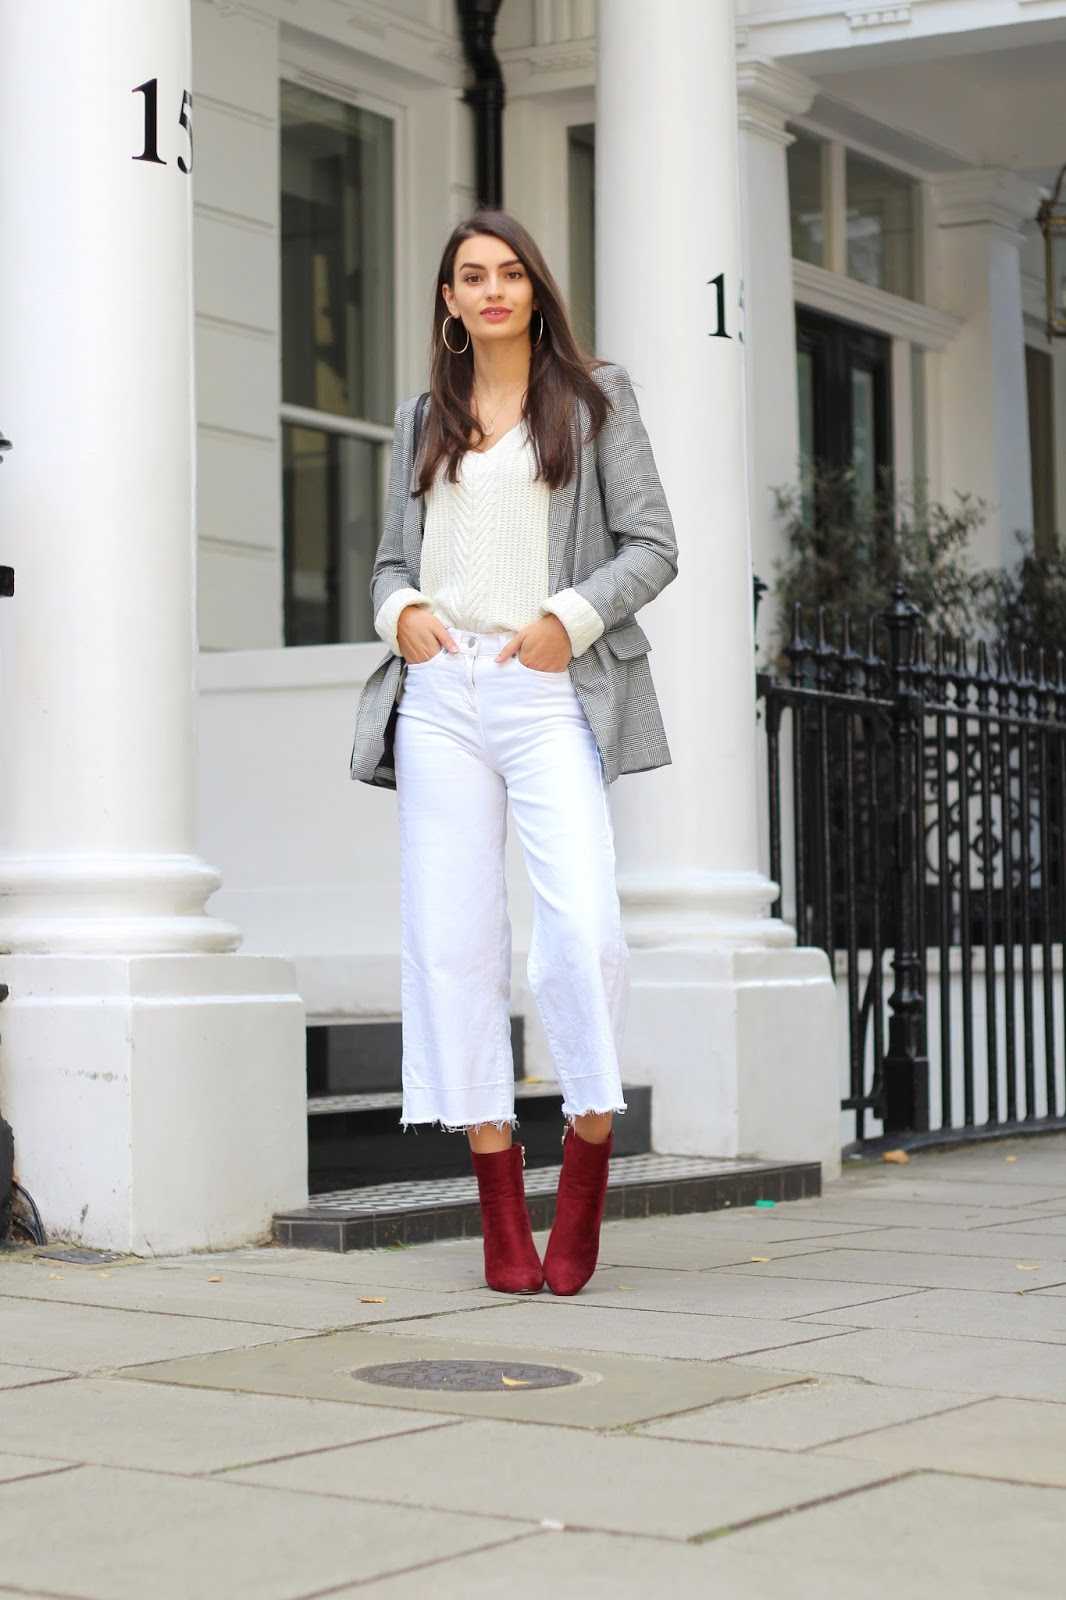 london personal style blogger peexo fashion